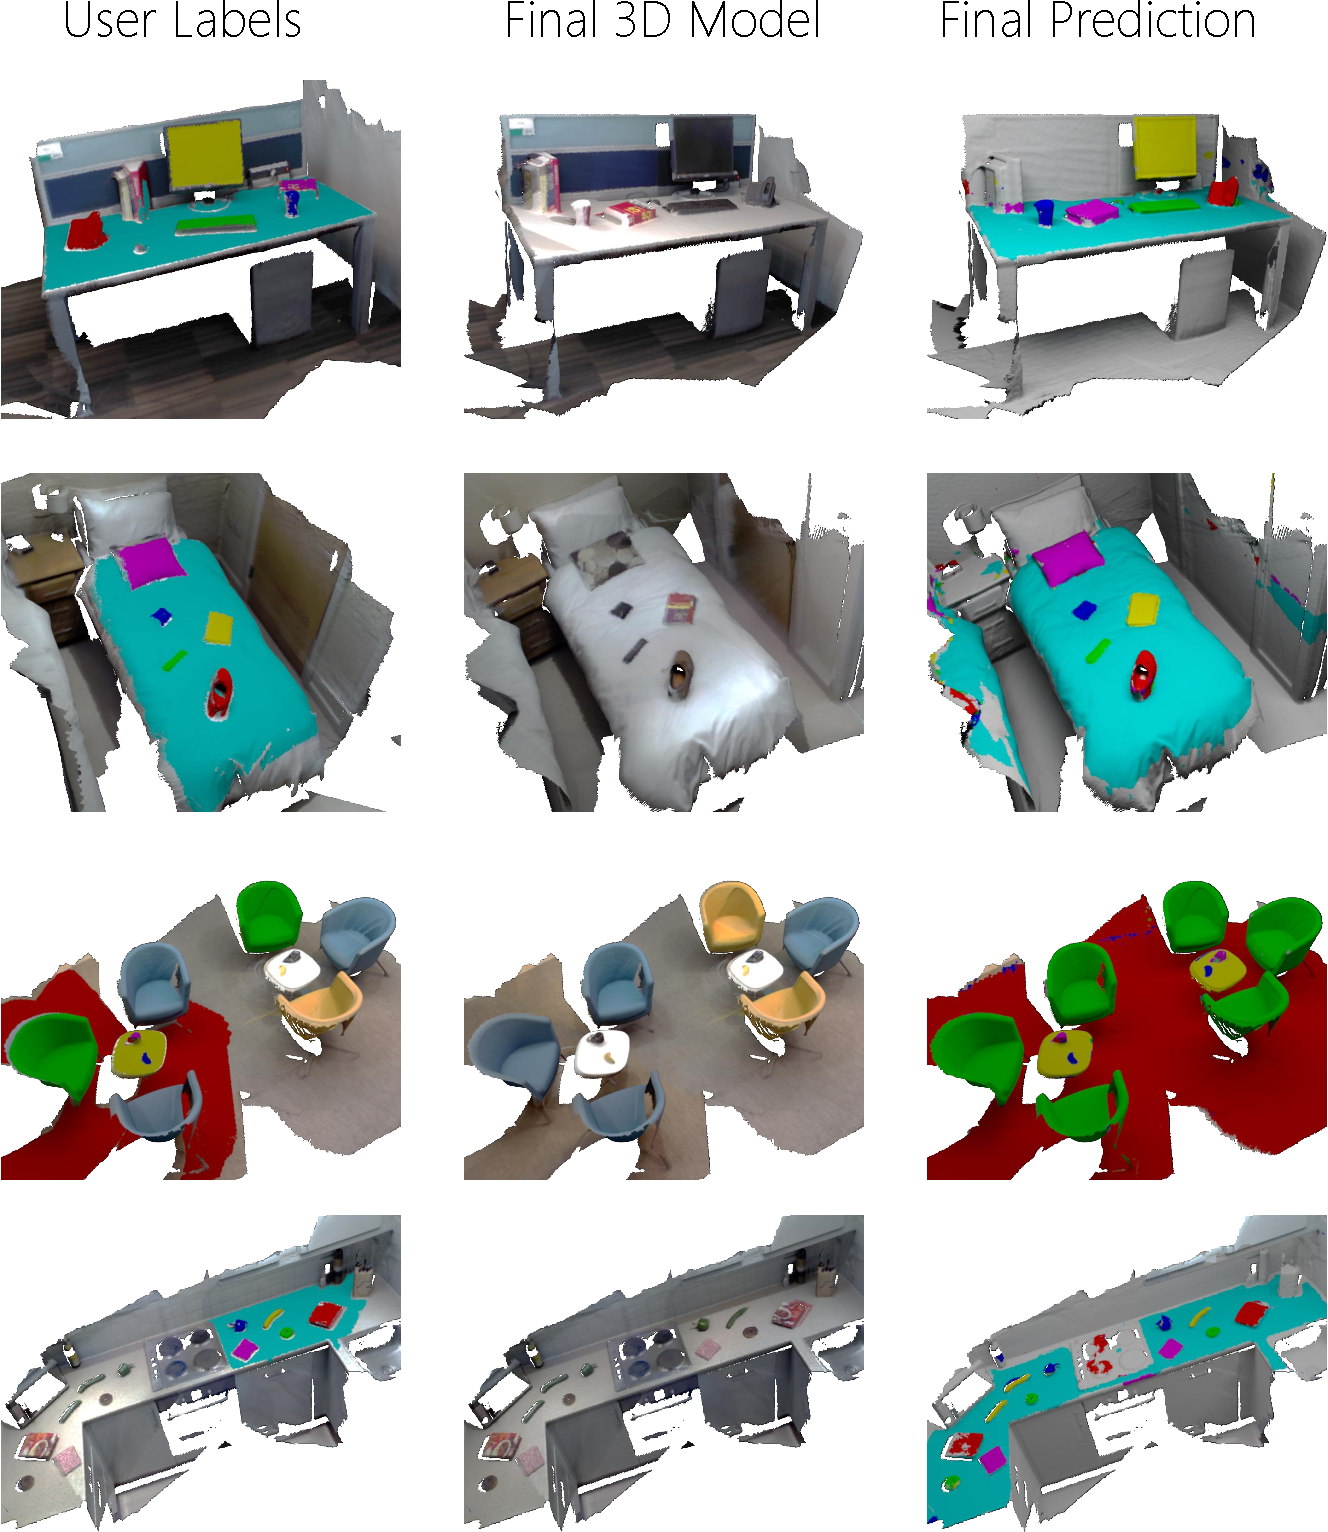 Figure 4 for SemanticPaint: A Framework for the Interactive Segmentation of 3D Scenes